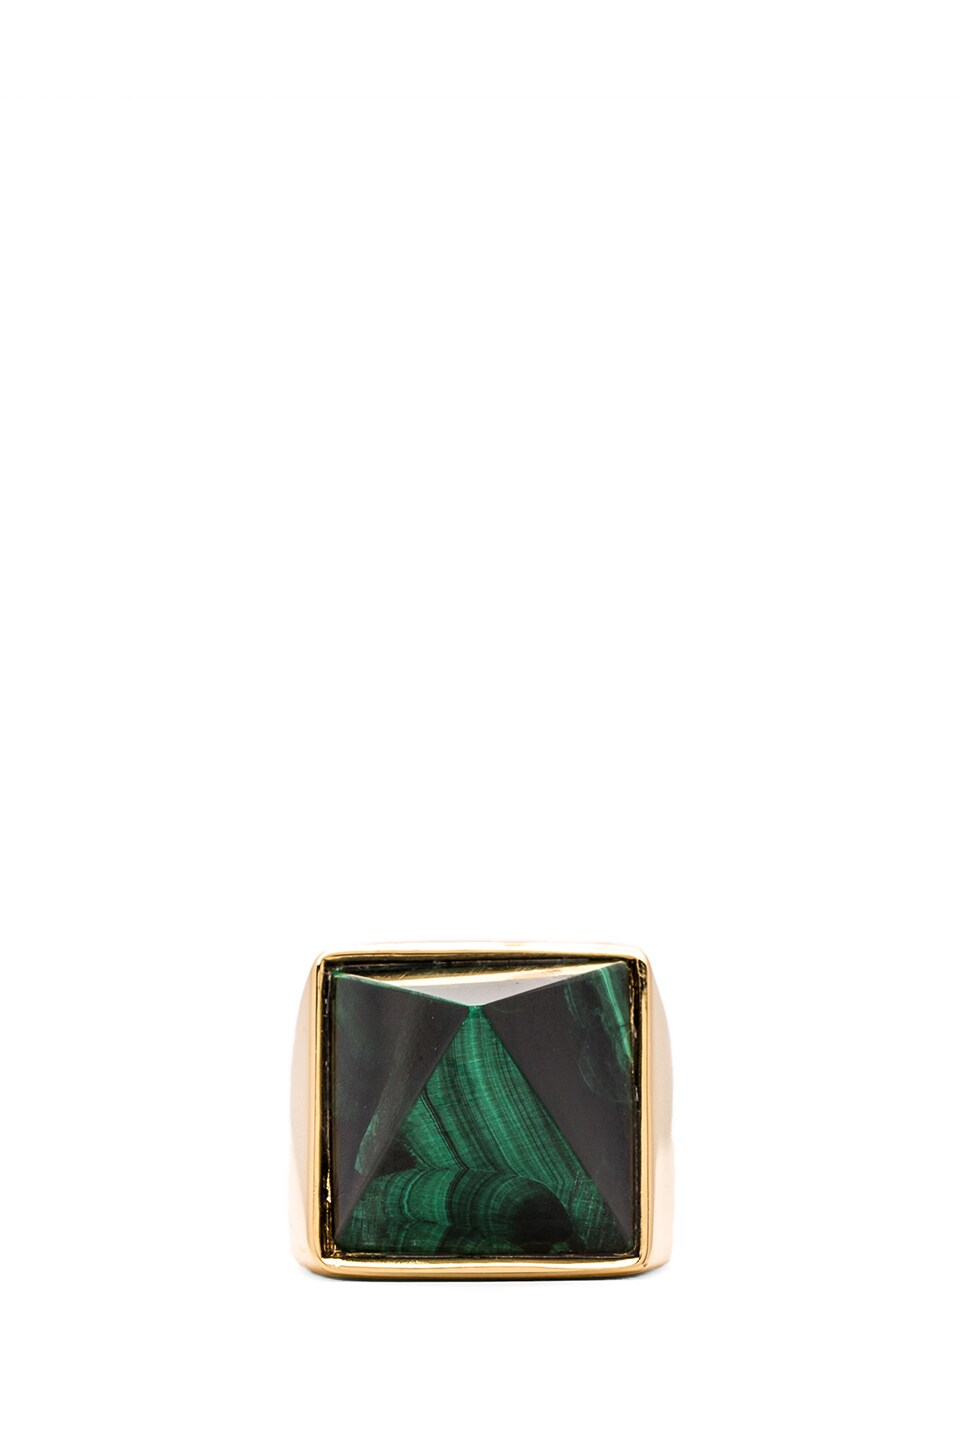 Amber Sceats Prediction Ring in Gold & Malachite Crystal